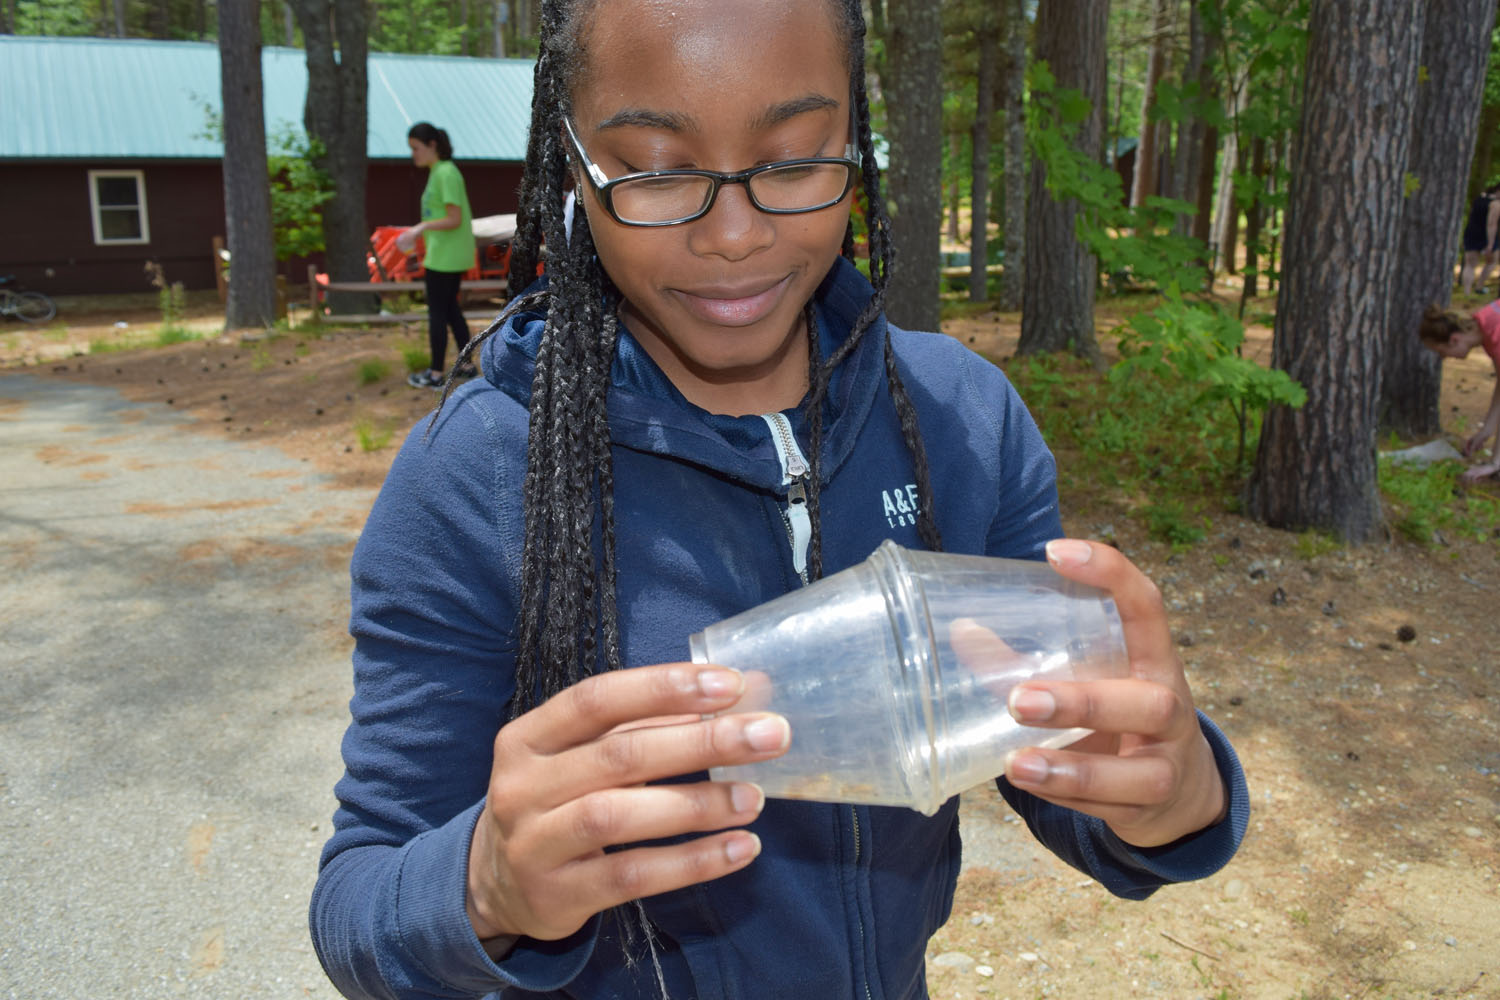 Counselors learned about the life cycles of butterflies and dragonflies, lessons they can share with their campers this summer, and went on a Bug Hunt. This counselor captured something neat in her bug cup! What could it be?